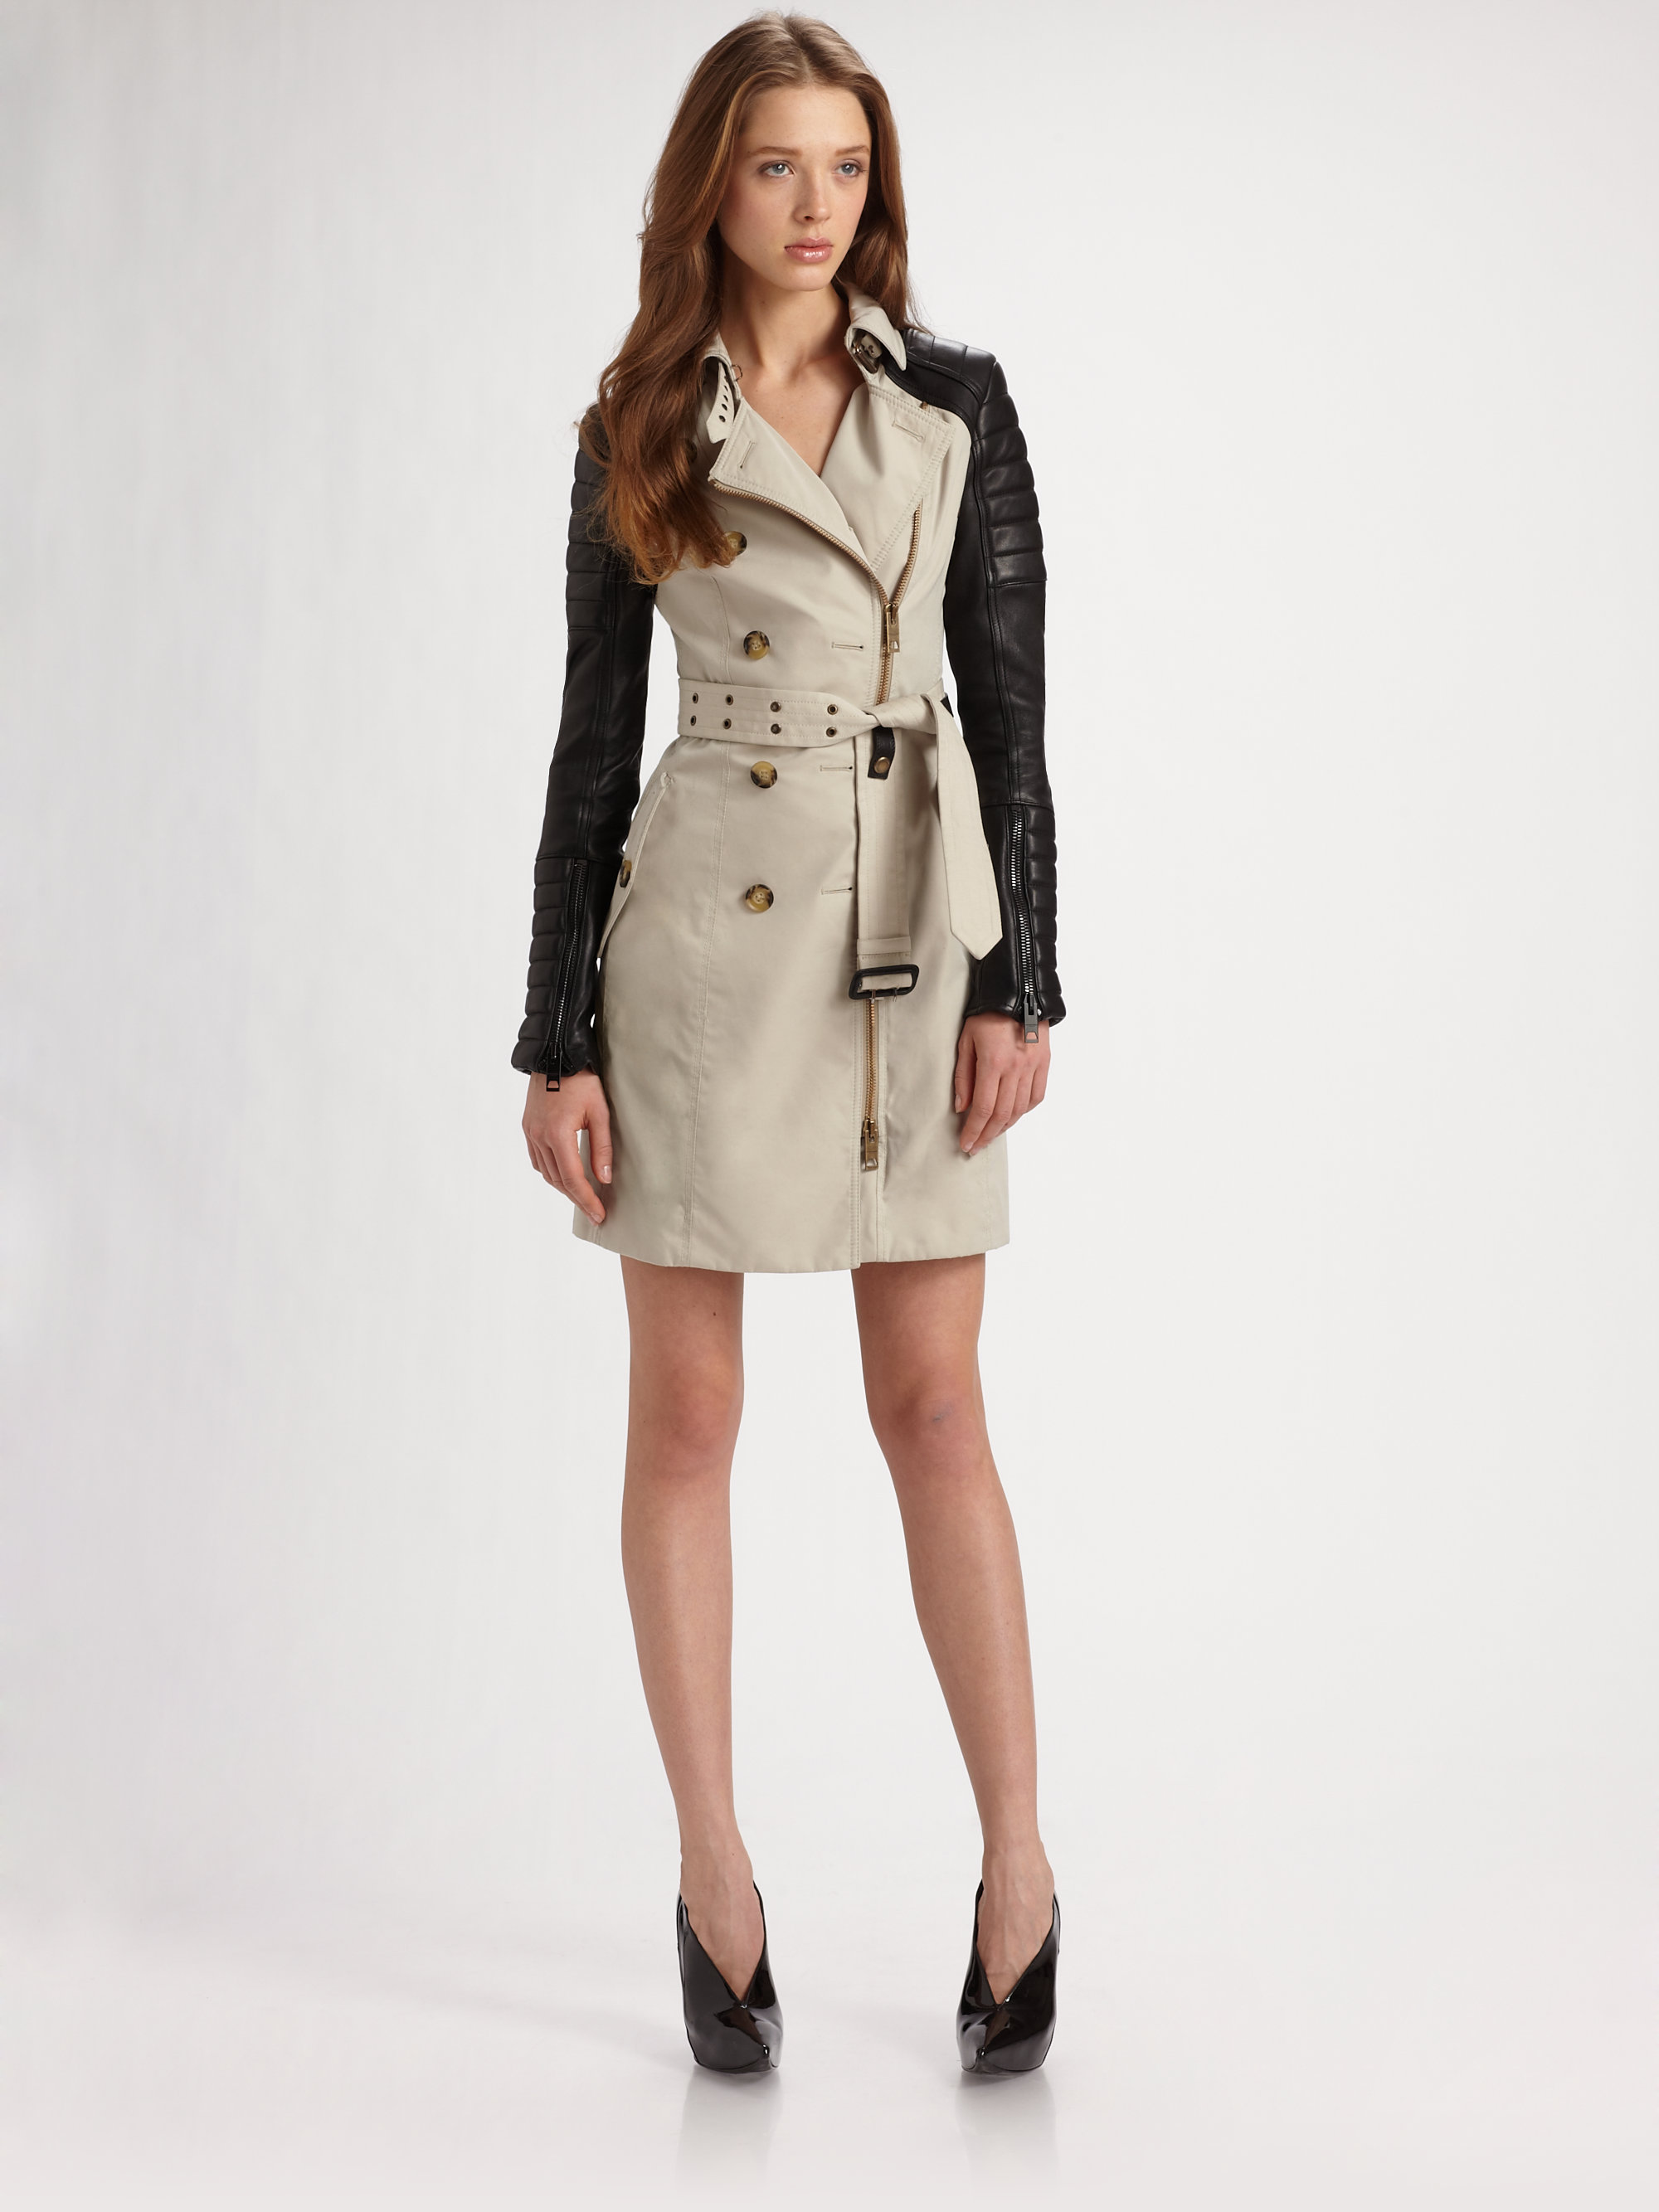 Trench Coat With Leather Sleeves Photo Album - Reikian